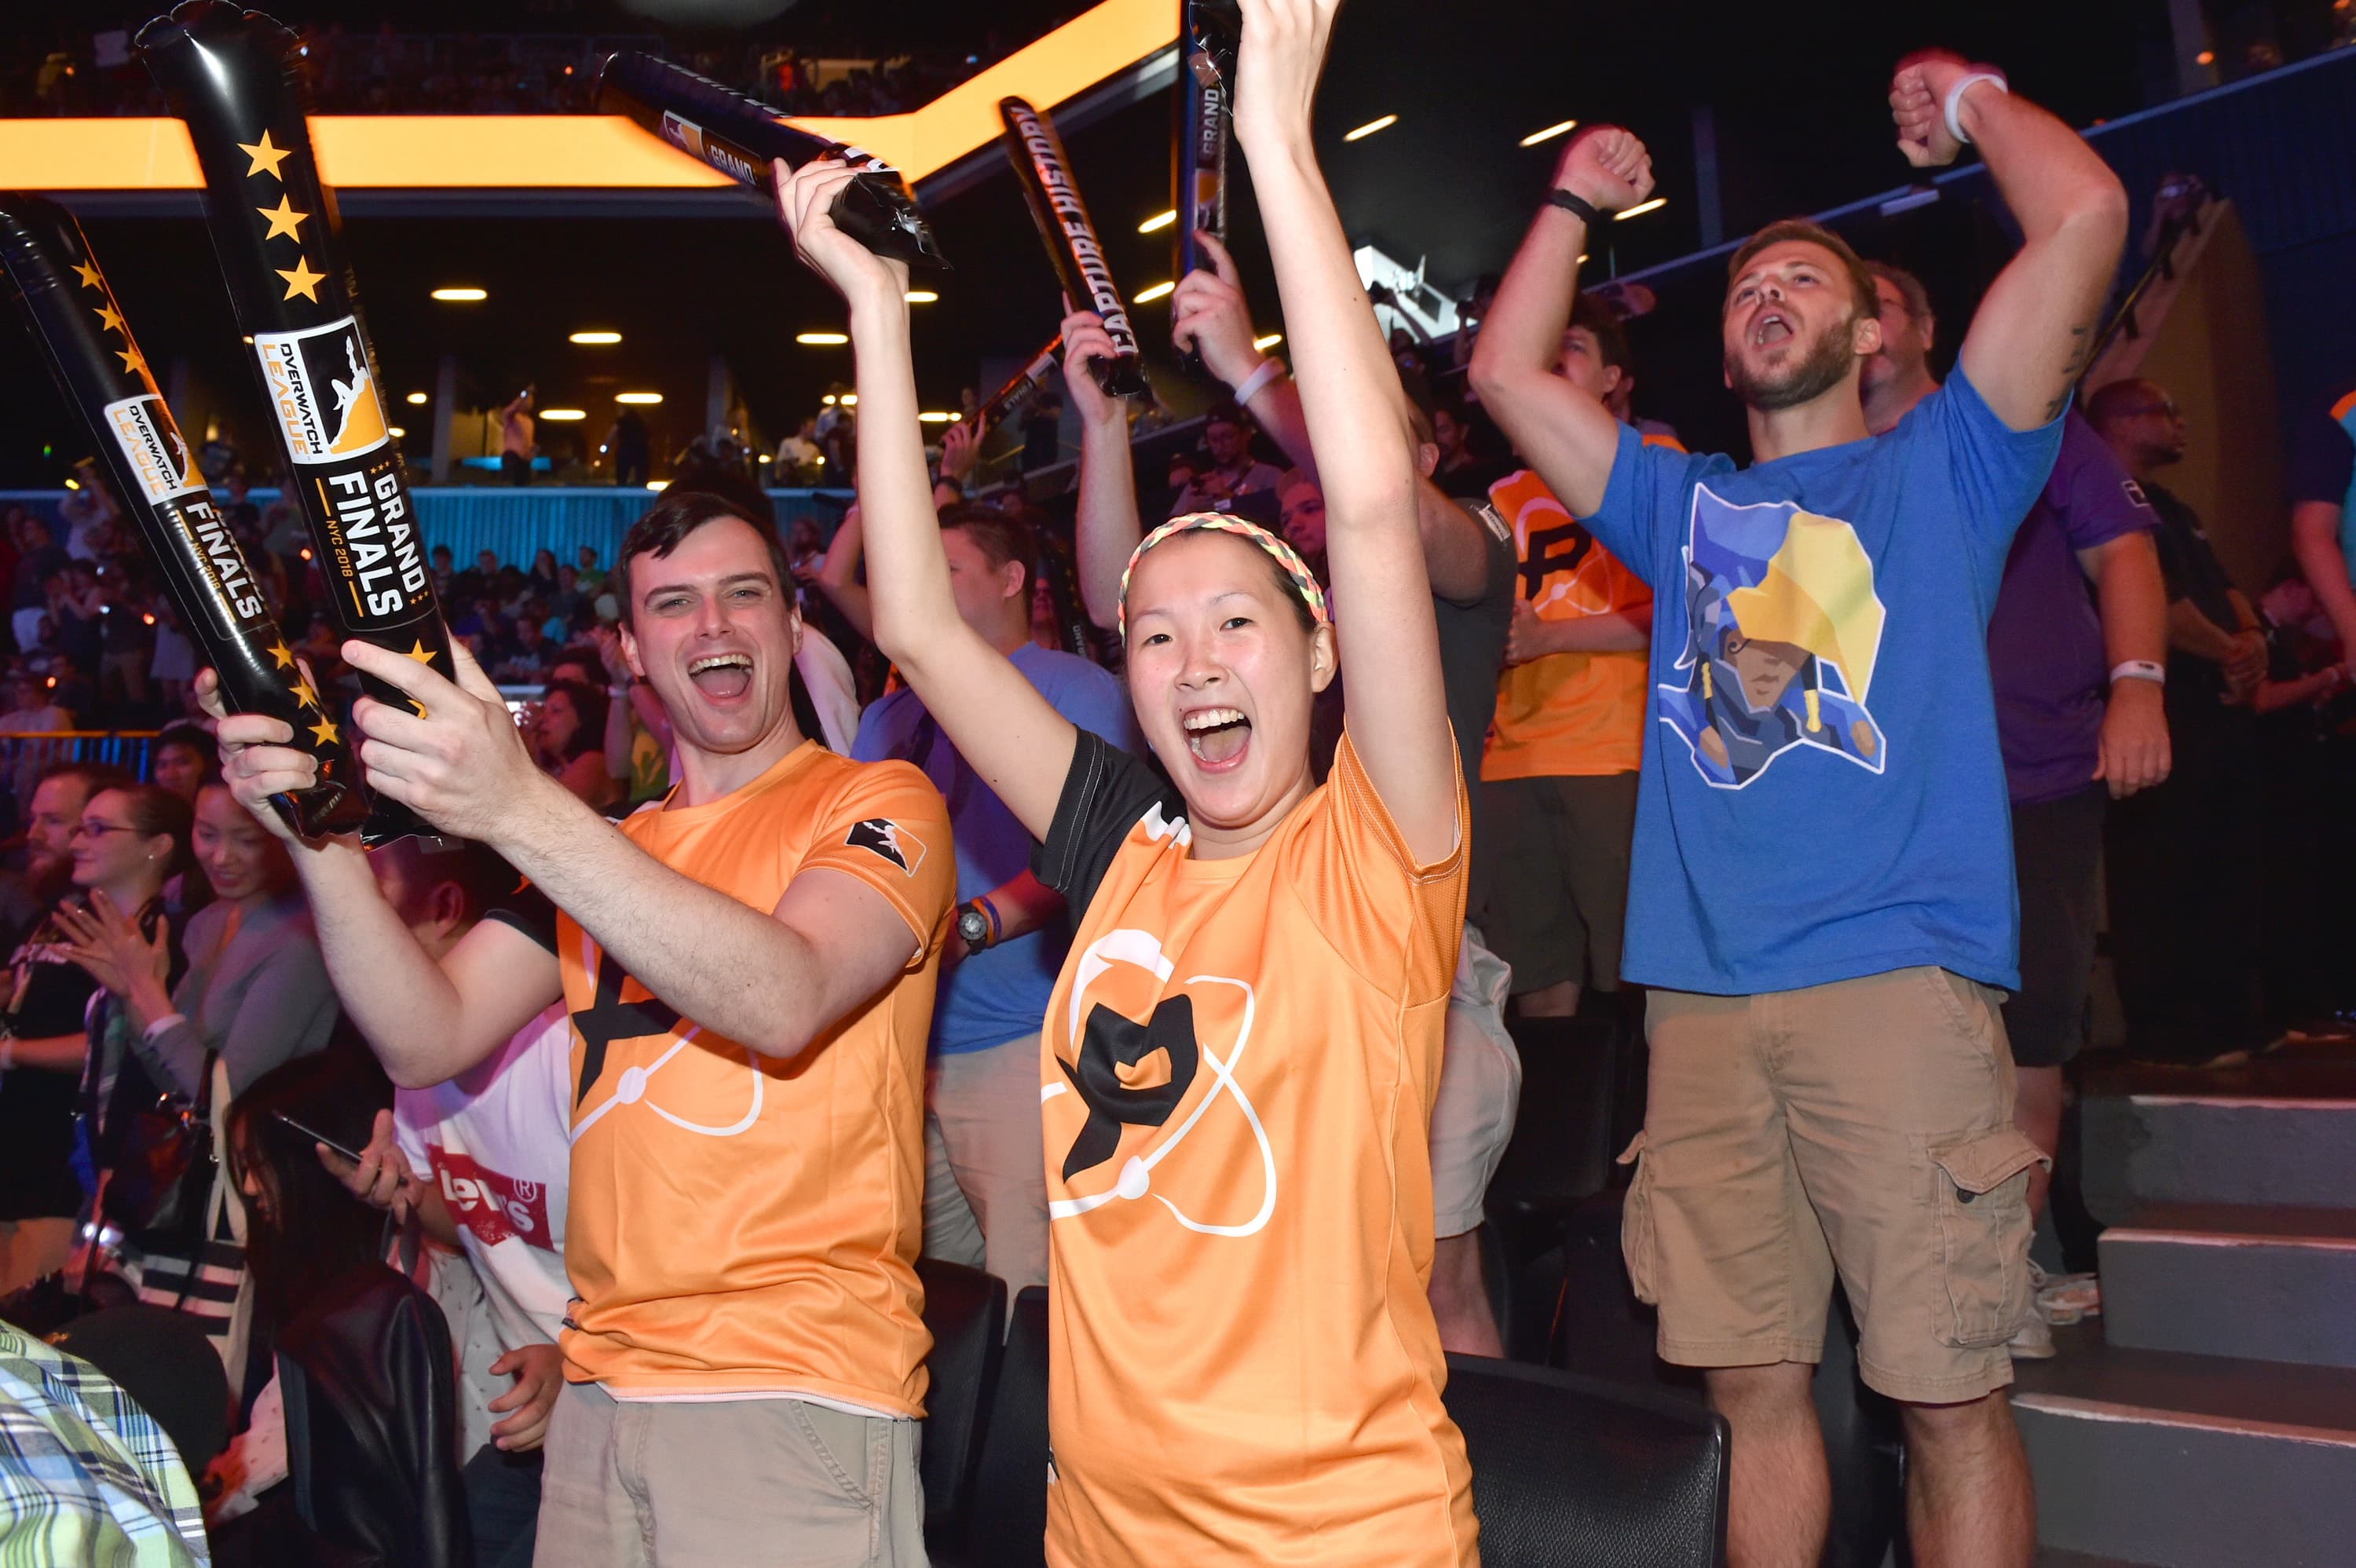 Activision Blizzard's esports league is one step closer to becoming like traditional sports